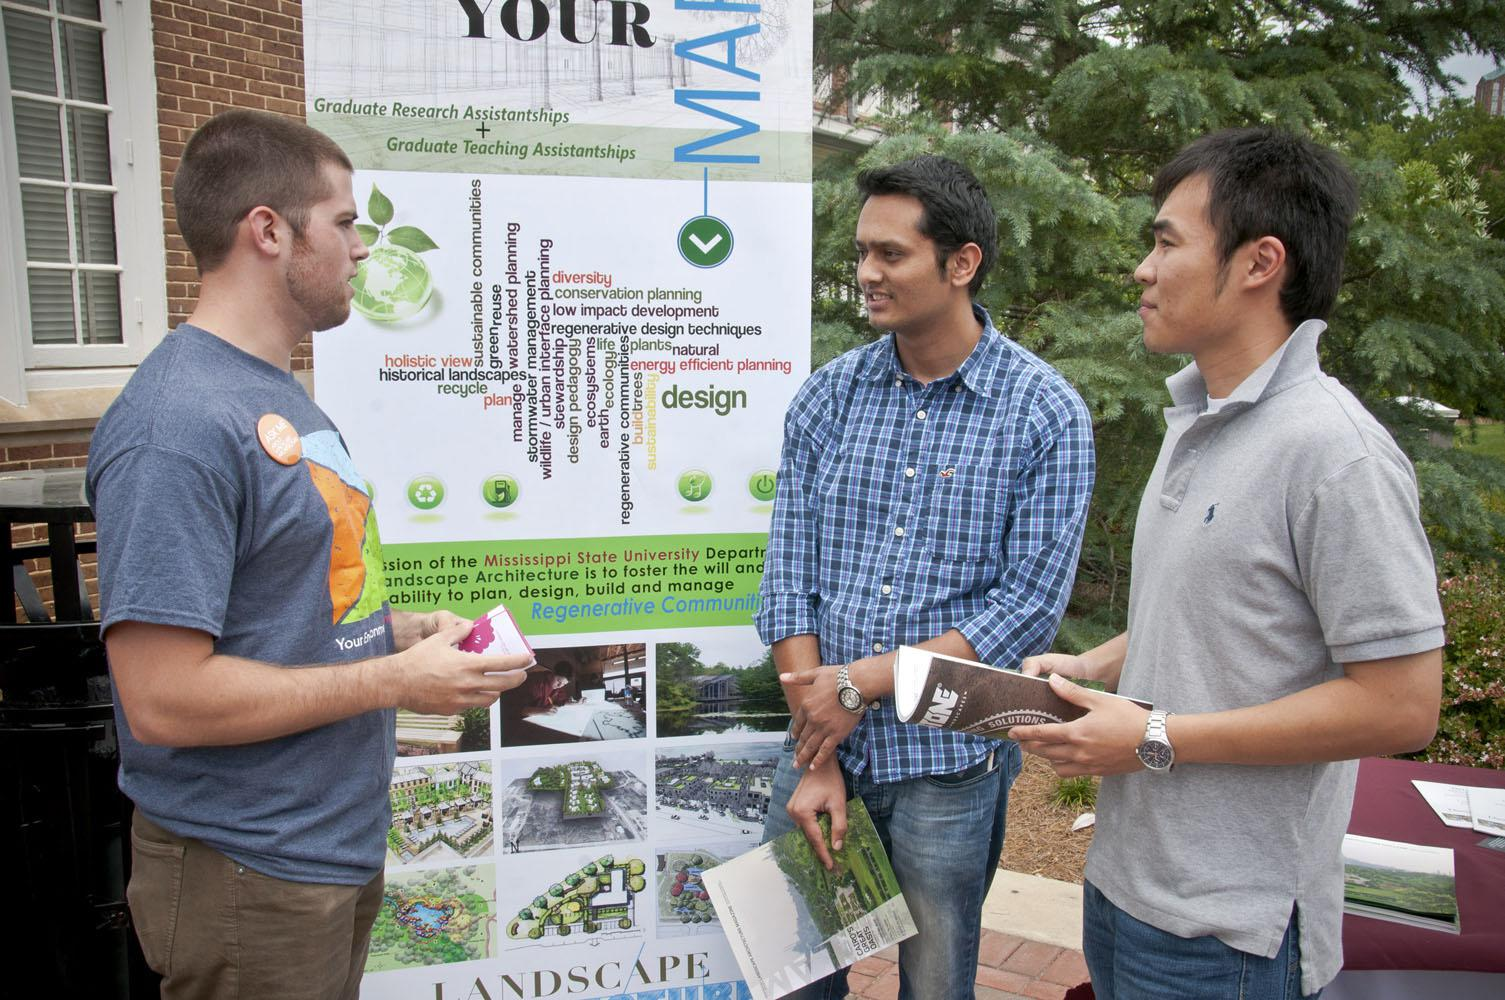 Mississippi State University senior landscape architecture student Owen Harris (left) speaks to Ranjit Amgai (center), an electrical engineering graduate student from Nepal, and Shengyi Pan, a computer engineering doctoral student from China, about the role of landscape architects in the environment. Landscape architects and students are celebrating National Landscape Architecture Month with outreach activities to promote their program and discipline. (Photo by MSU Ag Communications/Scott Corey)